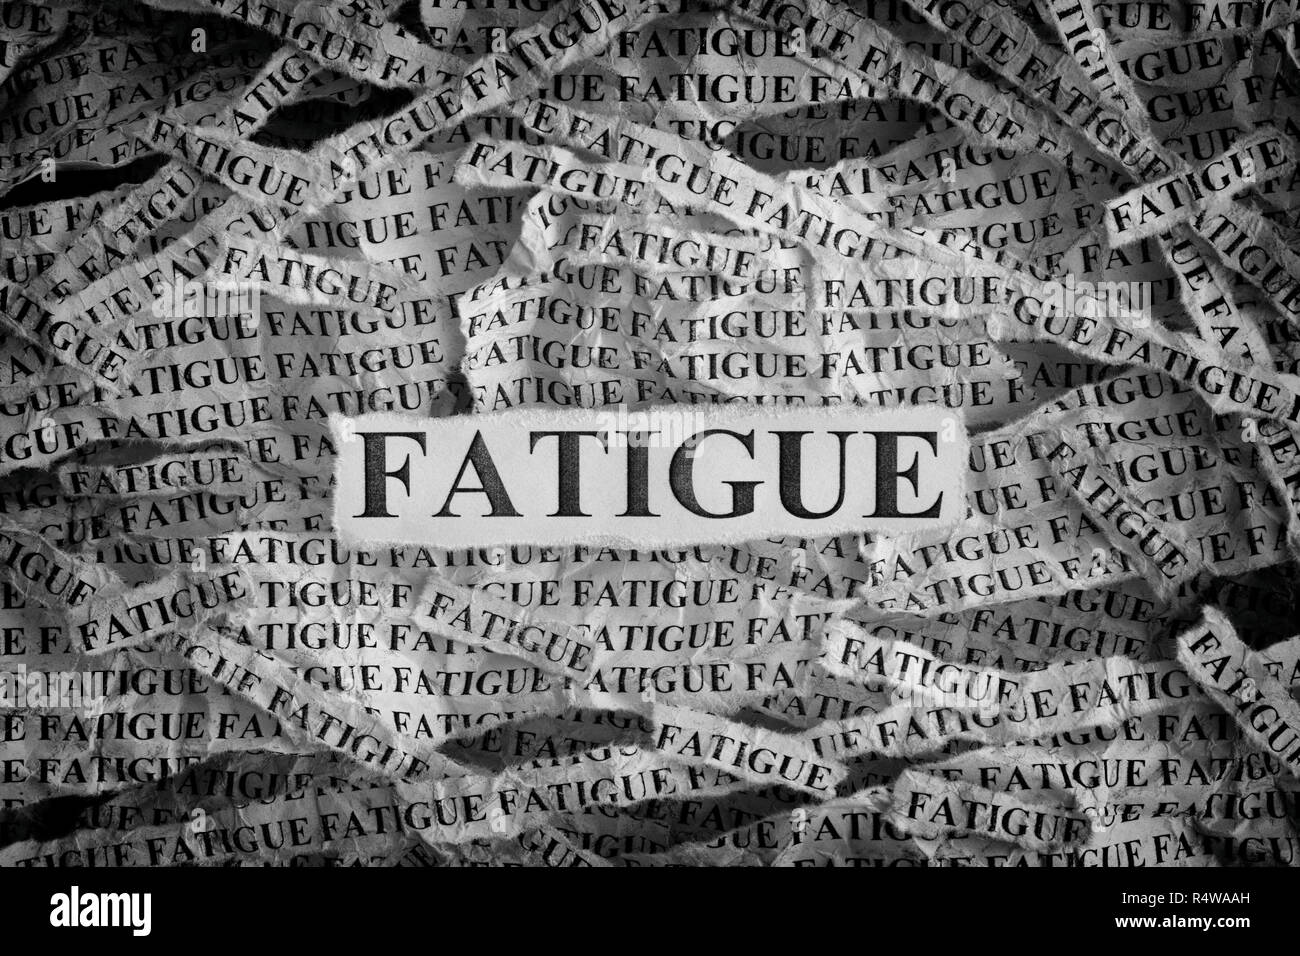 Fatigue. Torn pieces of paper with the word Fatigue. Concept Image. Black and White. Closeup. - Stock Image